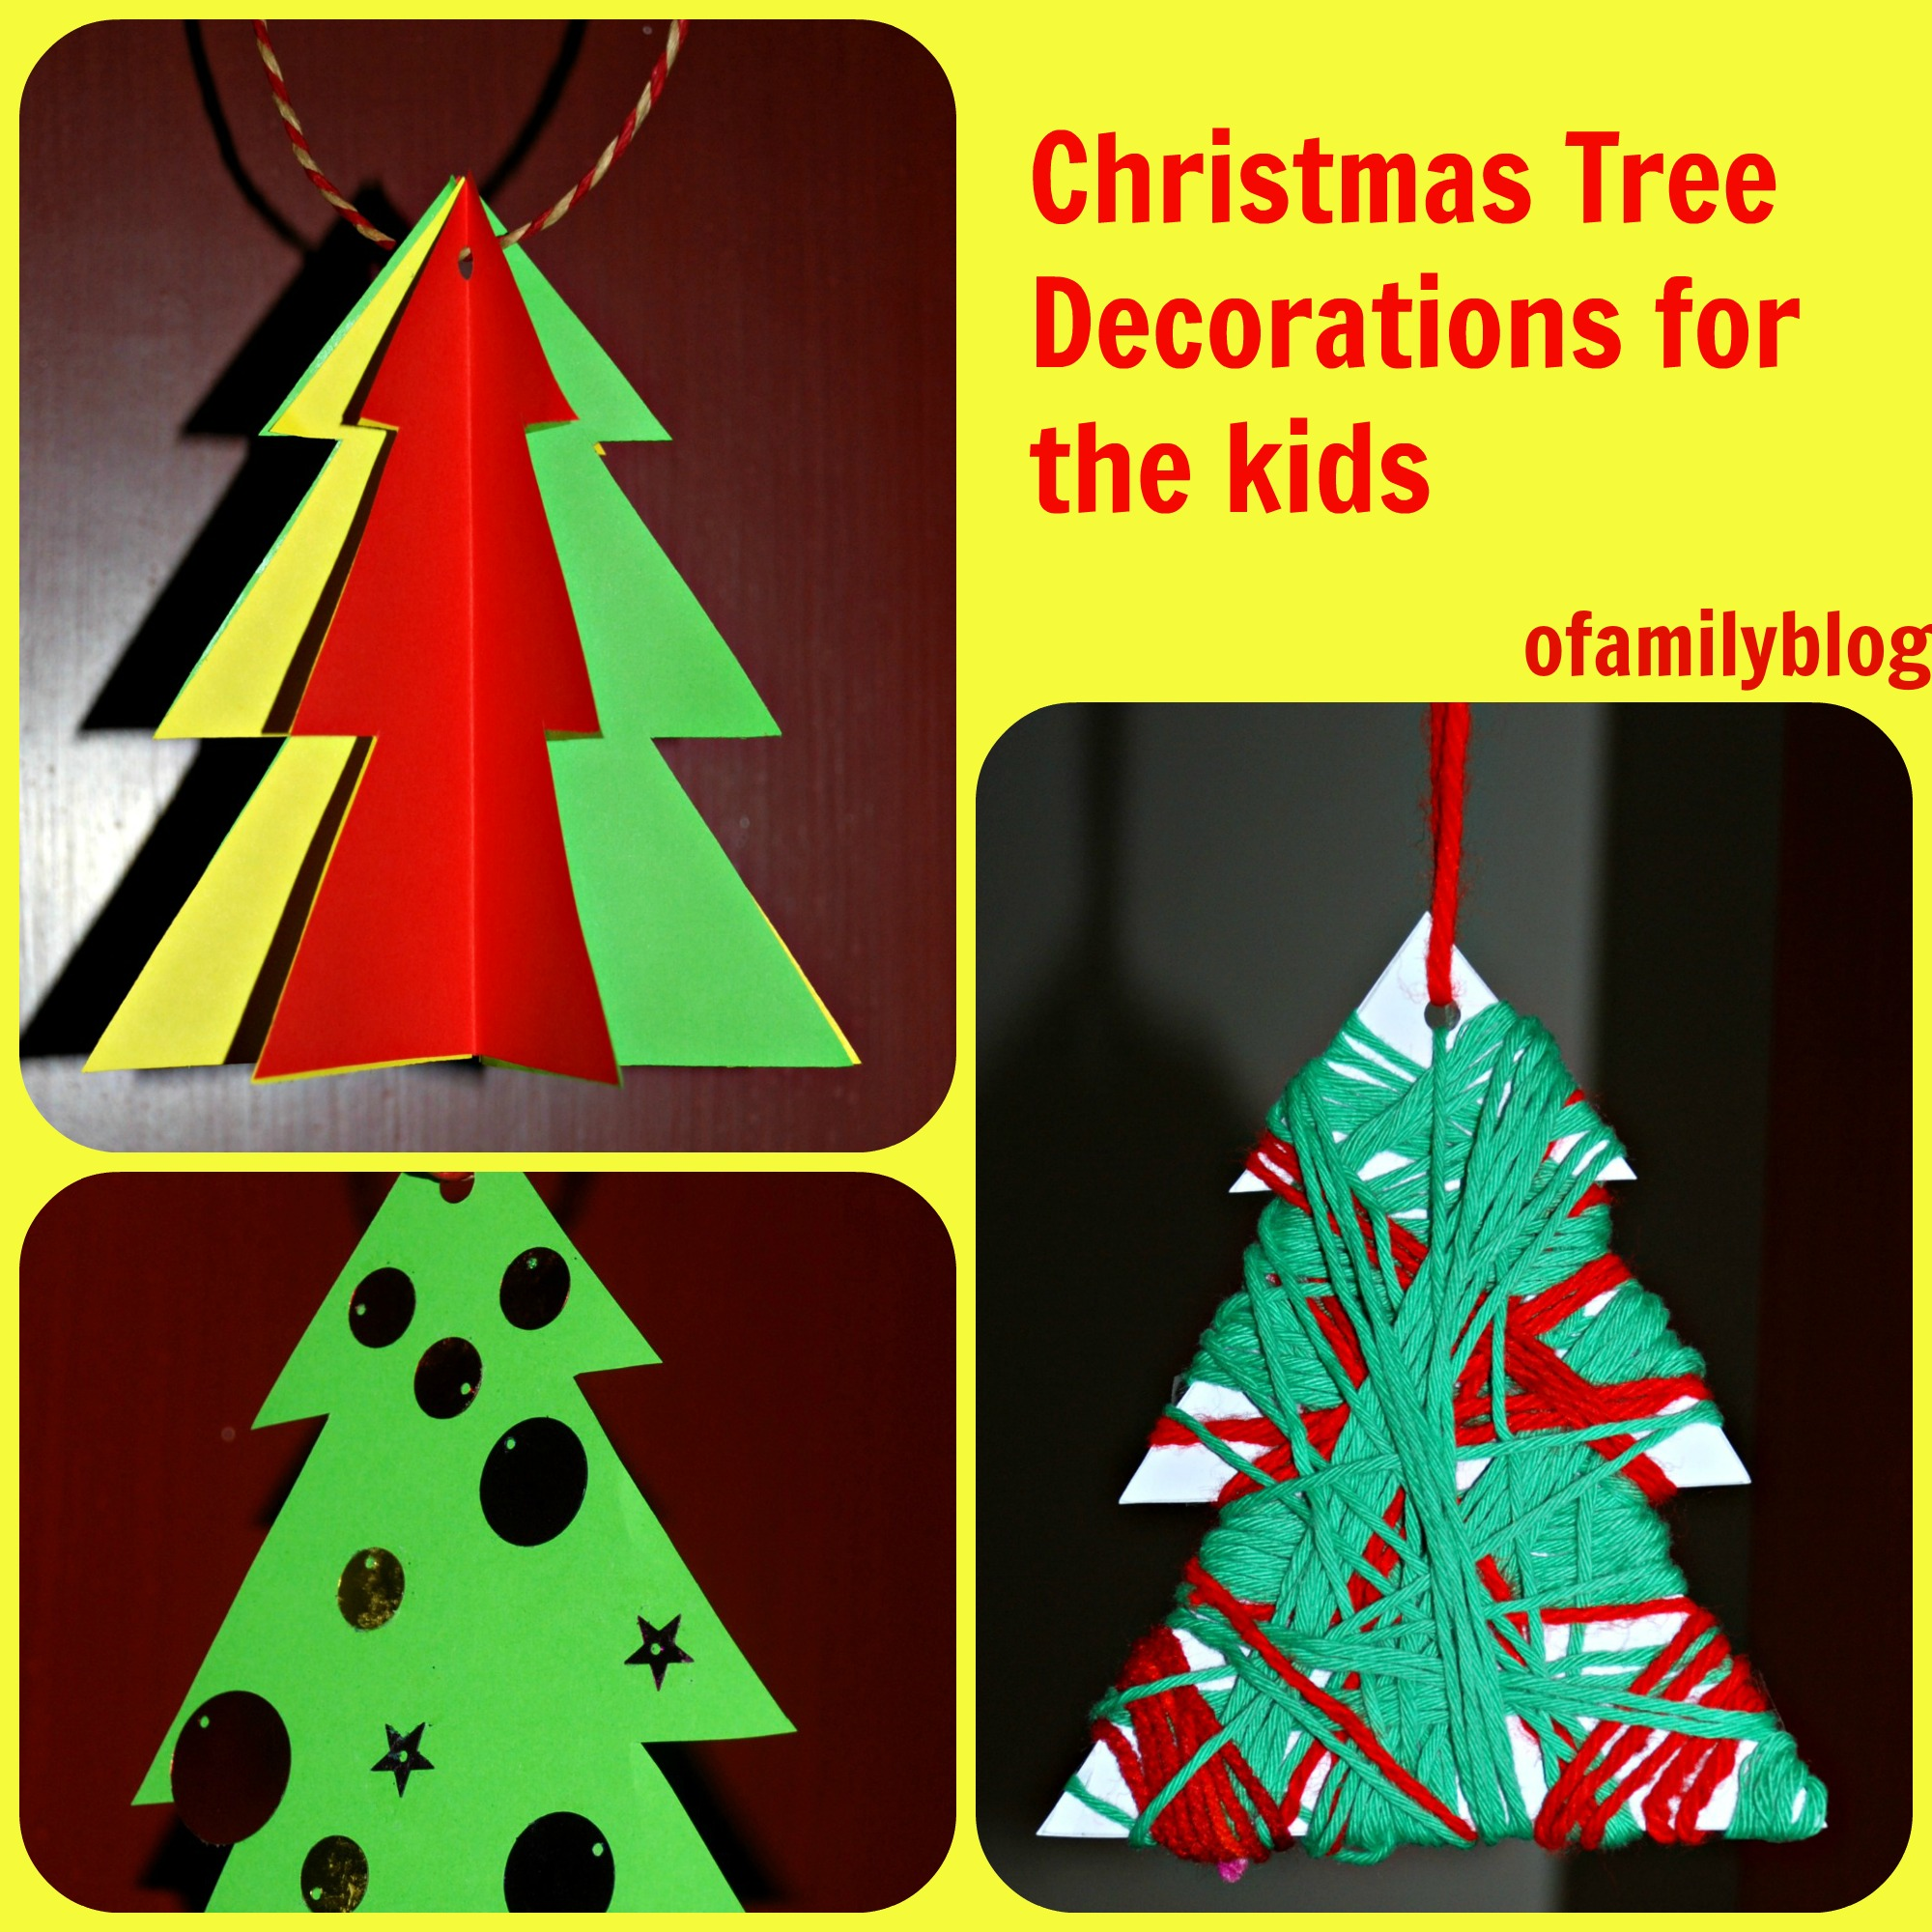 christmas tree decorations for the kids to make using an activity village template found on ofamilyblog